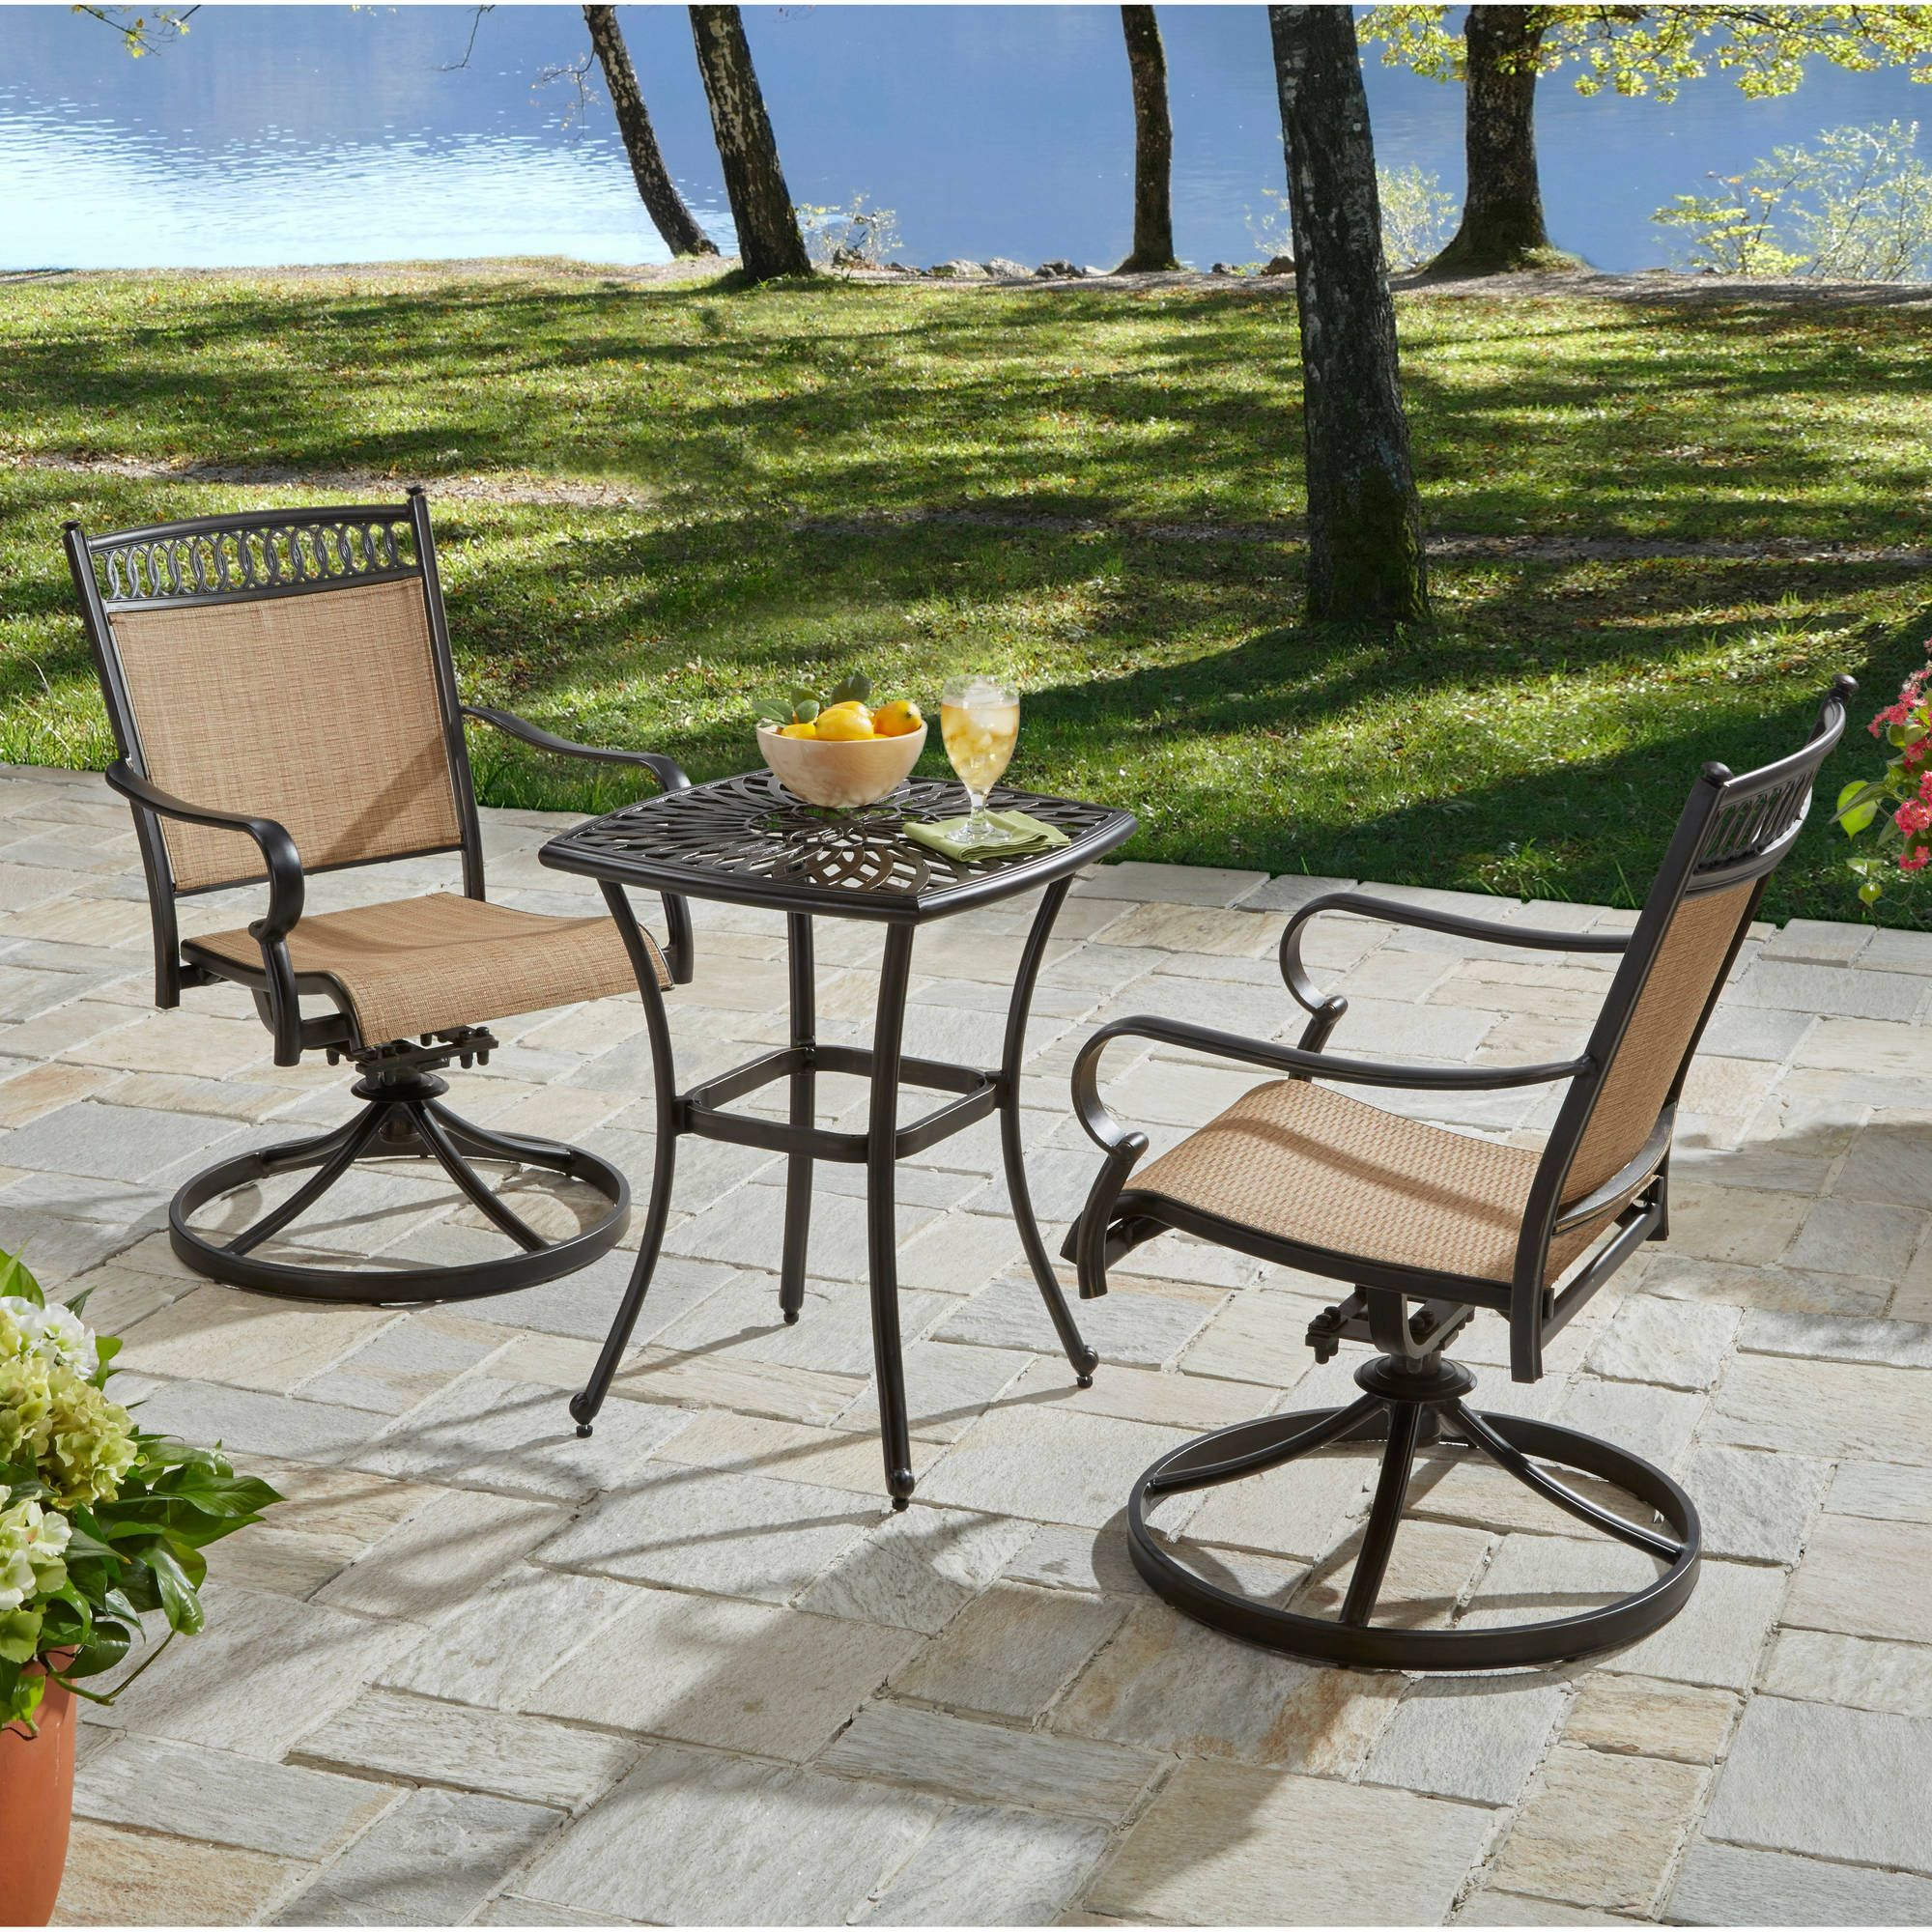 Better Homes And Gardens Warrens 3 Piece Aluminum Bistro Set Topoffersmall Com Outdoor Bistro Set Clearance Outdoor Furniture Patio